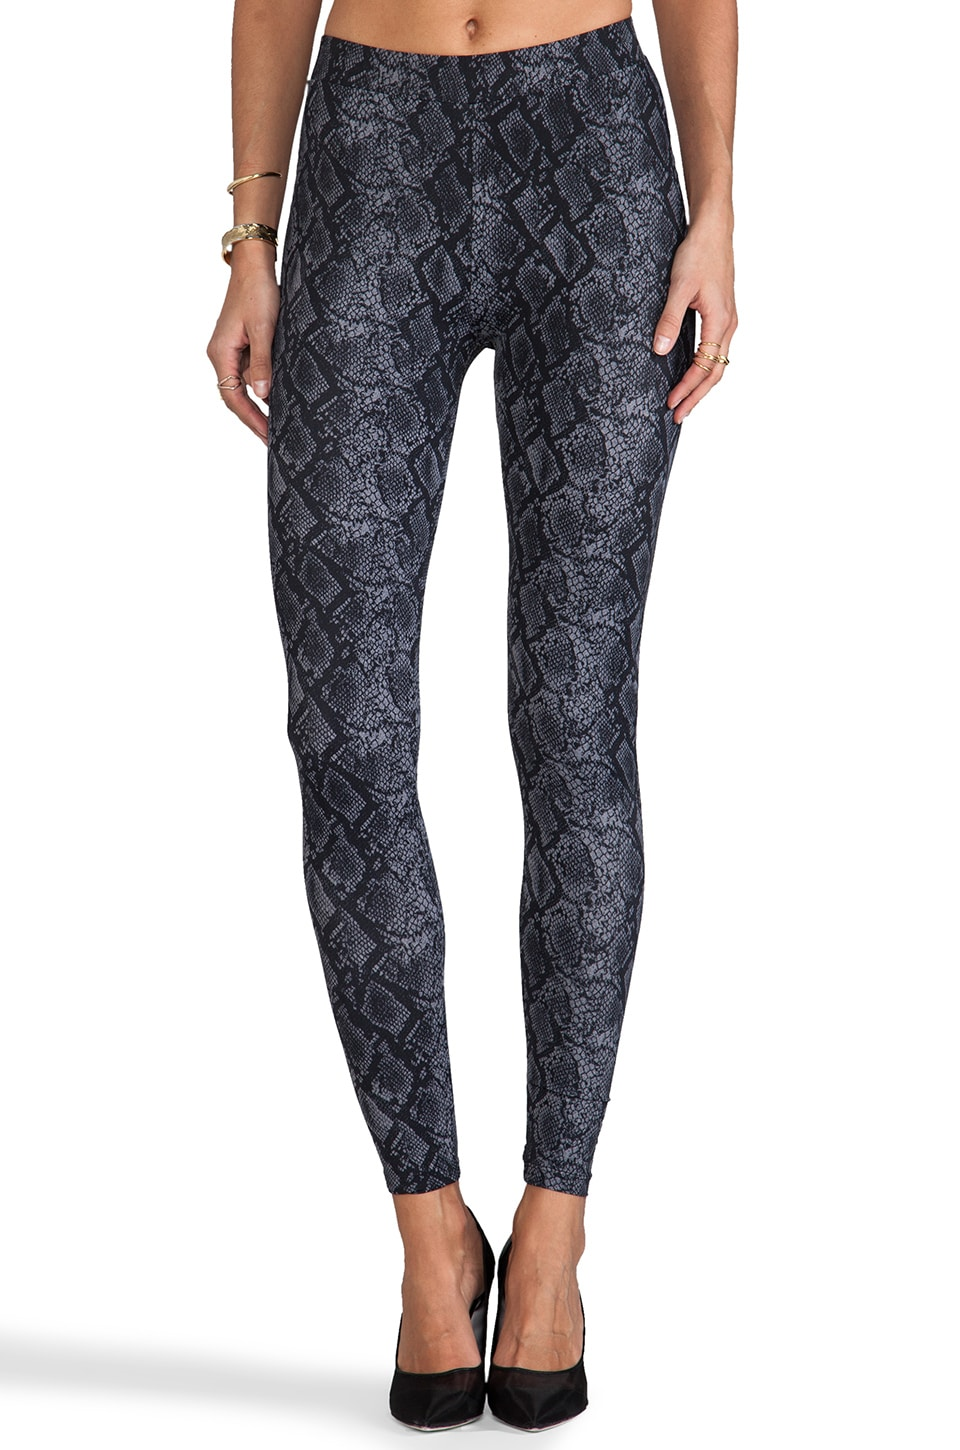 C&C California x Stephanie Printed Snake Legging in Sable